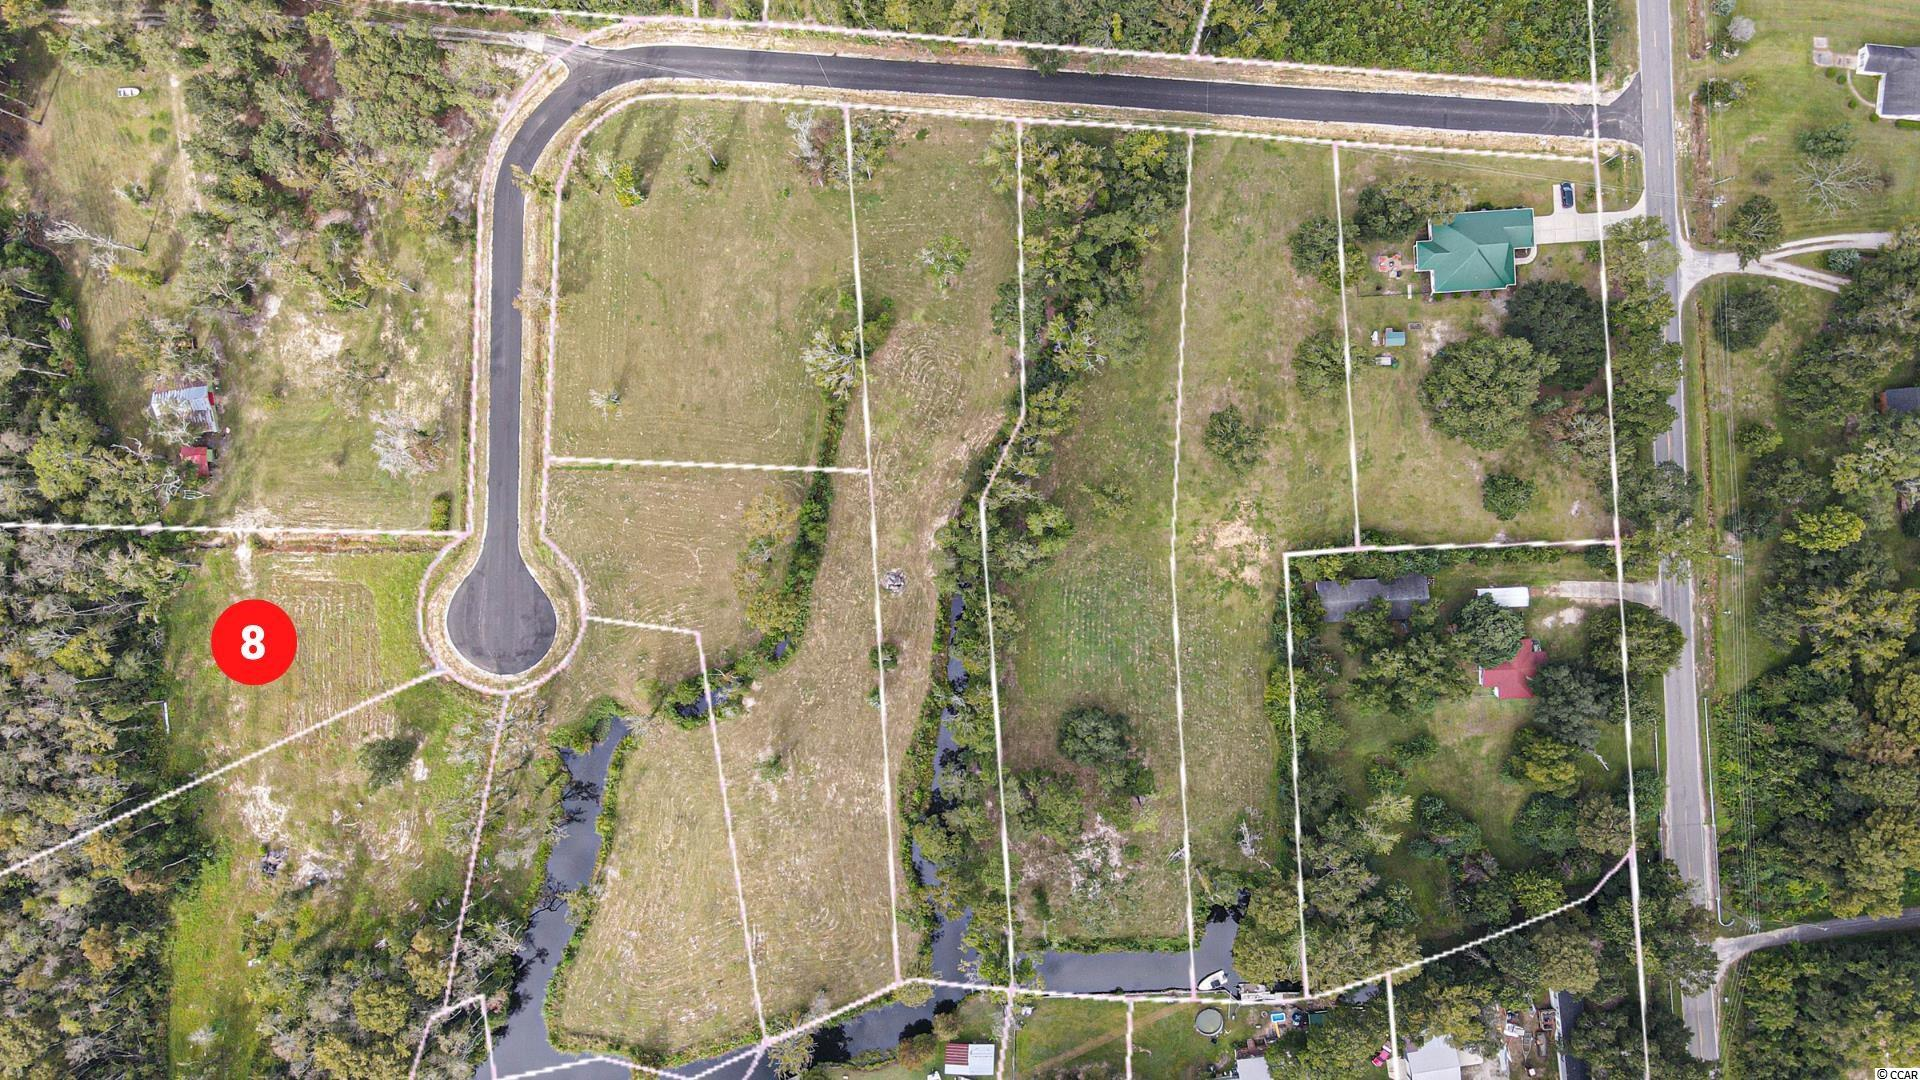 DON'T MISS OUT ON THIS INCREDIBLE OPPORTUNITY! This lot is almost 2.5 ACRES OF LAND on the INTRACOASTAL WATERWAY! This lot gives you the opportunity to build your dream home! Being in such a great location, you are only minutes to the beach, Market Commons, Coastal Grand Mall, Broadway at the beach, delicious restaurants, shops, and so much more! Being in this Intracoastal Waterway community of Peachtree Estates, you can enjoy all the water activities just walking distance from your home perfect for all the summertime fun! Book your showing today!